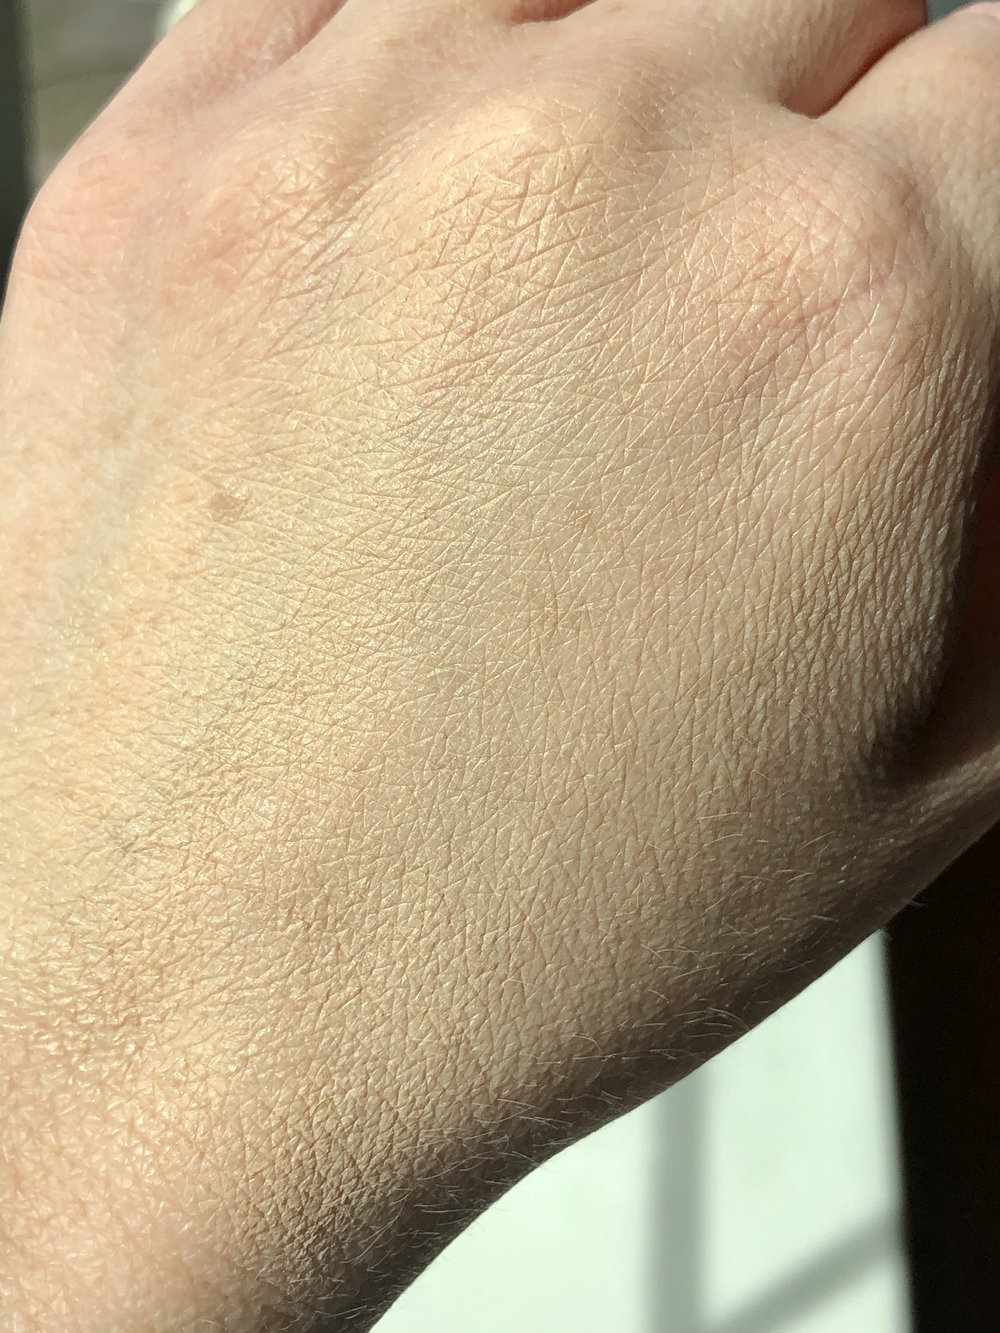 The Fenty Beauty Eaze Drop Blurring Skin Tint in the shade 2 blended into the back of my hand